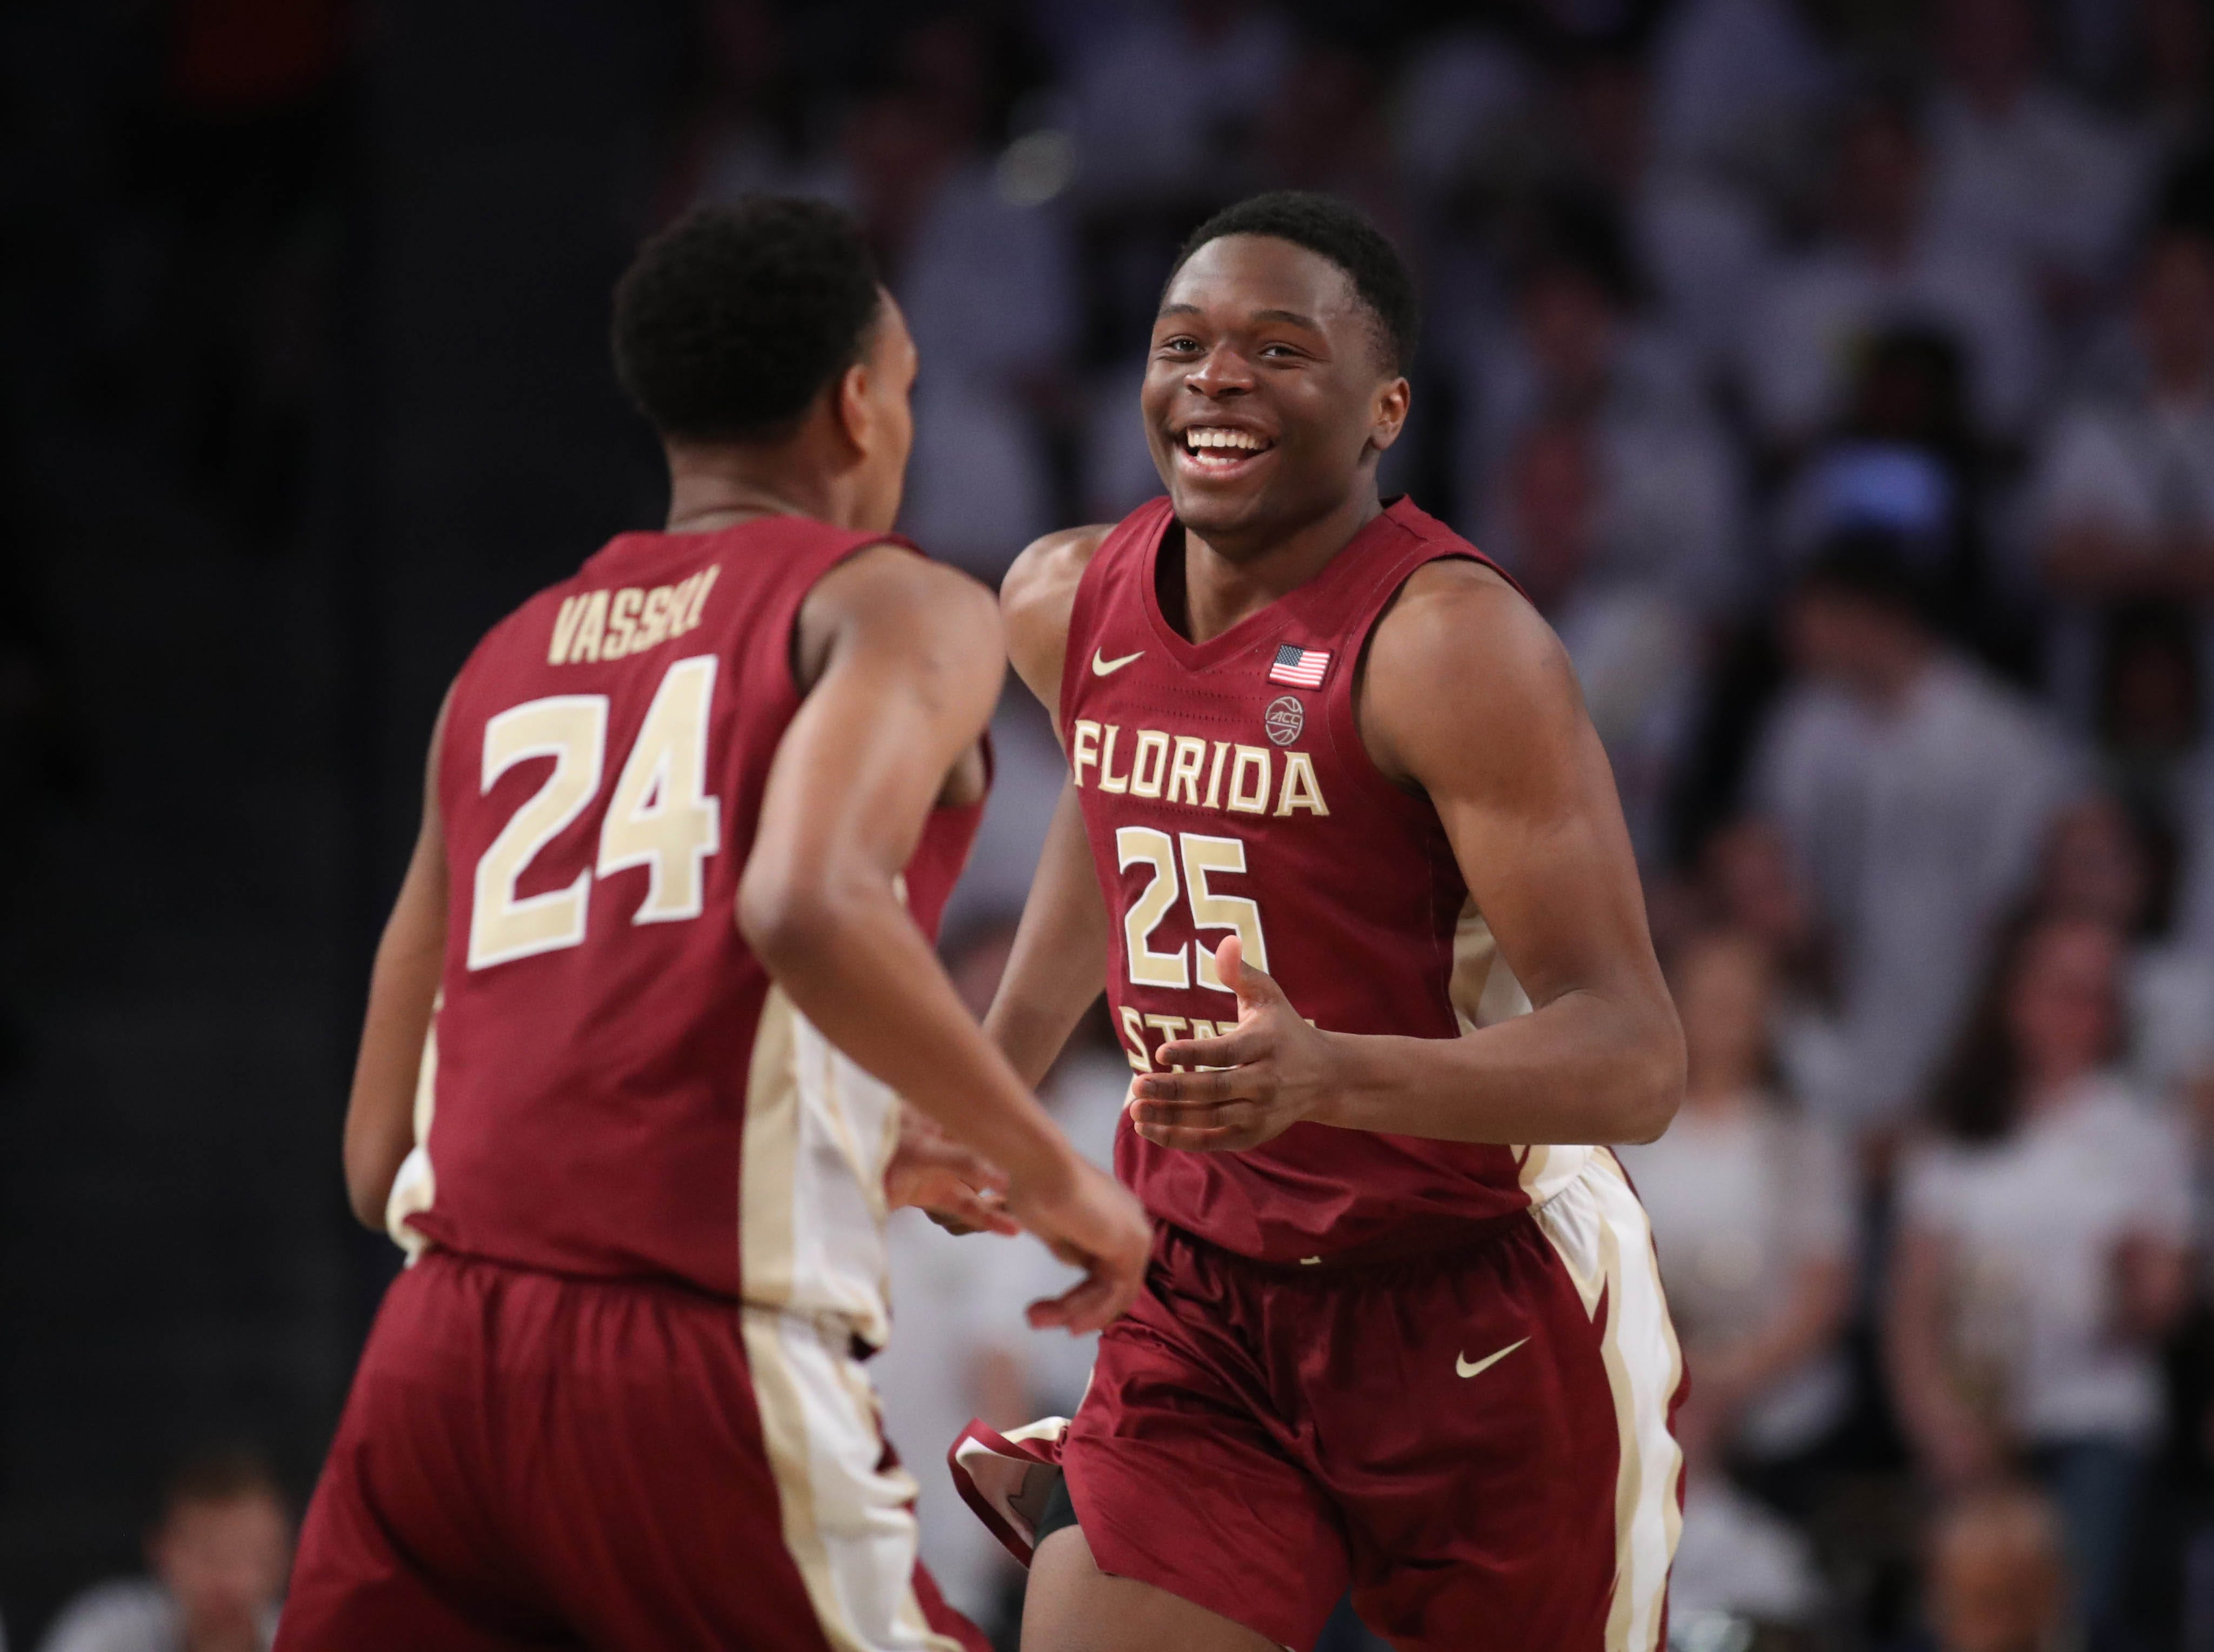 Feb 16, 2019; Atlanta, GA, USA; Florida State Seminoles forward Mfiondu Kabengele (25) celebrates a basket with guard Devin Vassell (24) in the second half against Georgia Tech Yellow Jackets at McCamish Pavilion. Mandatory Credit: Jason Getz-USA TODAY Sports